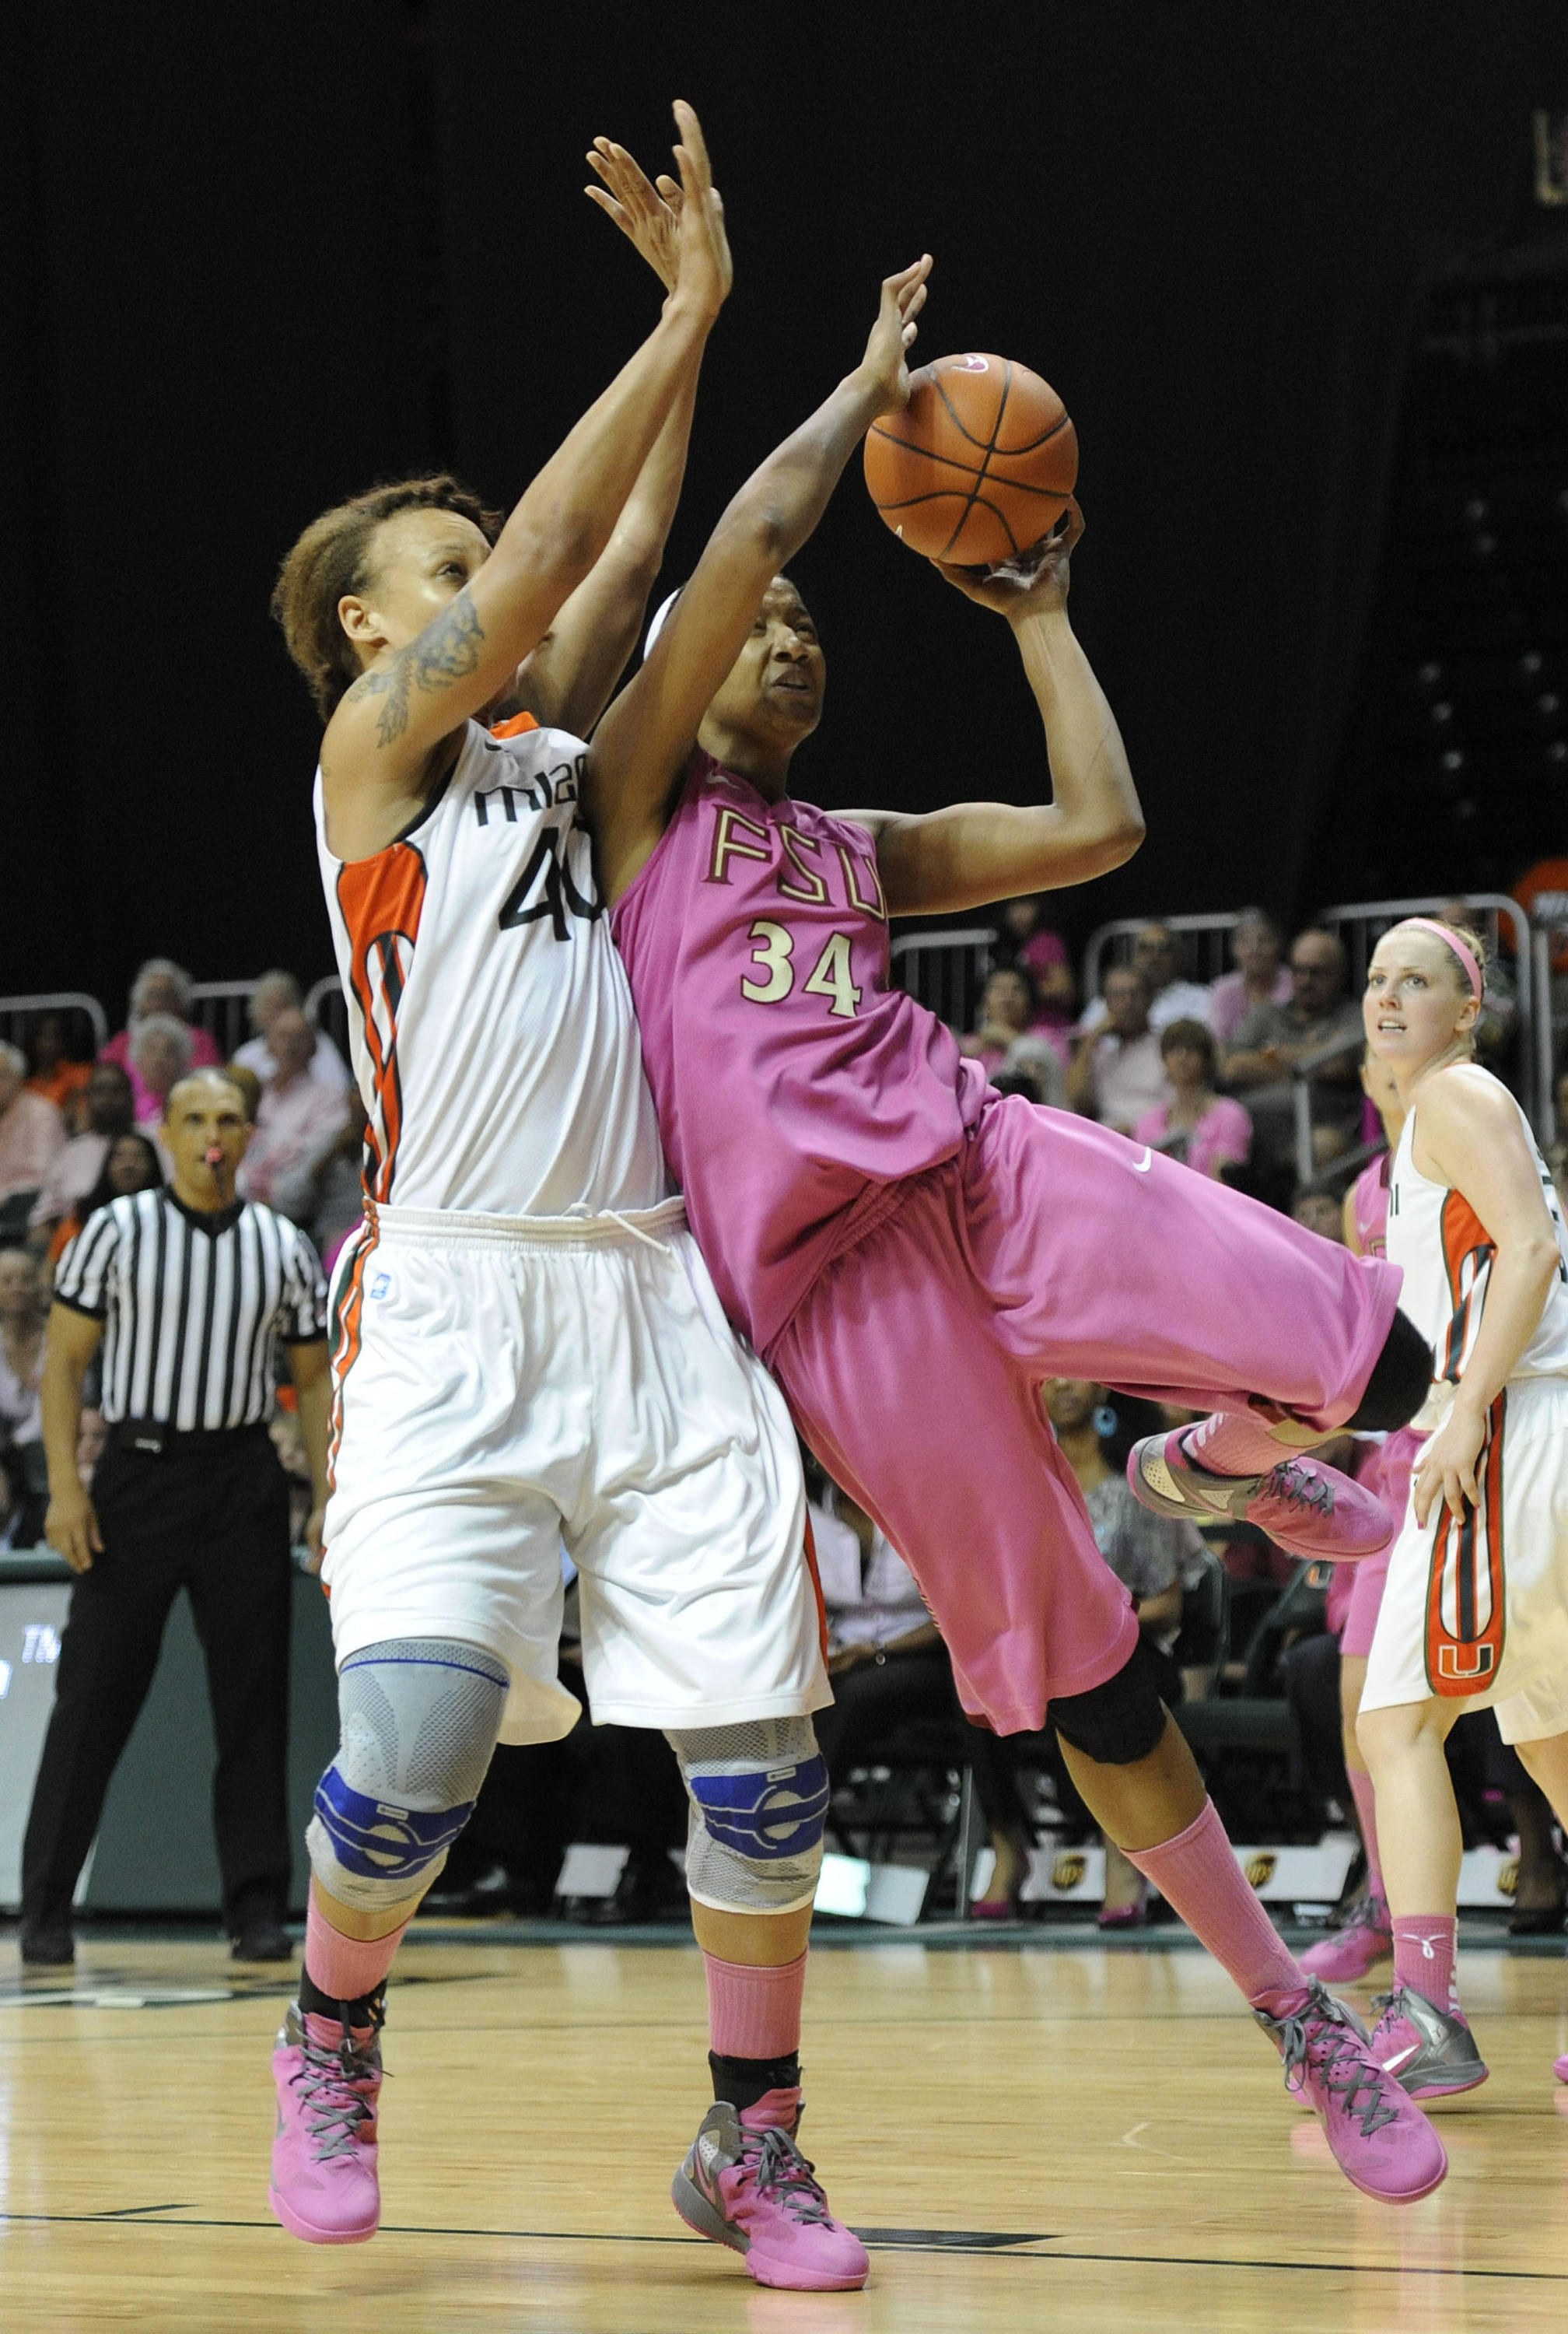 Miami's Shawnice Wilson, left, defends Florida State's Chelsea Davis, right, during the second half of an NCAA college basketball game on Sunday, Feb. 19, 2012, in Coral Gables, Fla. Miami defeated Florida State 67-60. (AP Photo/Rhona Wise)